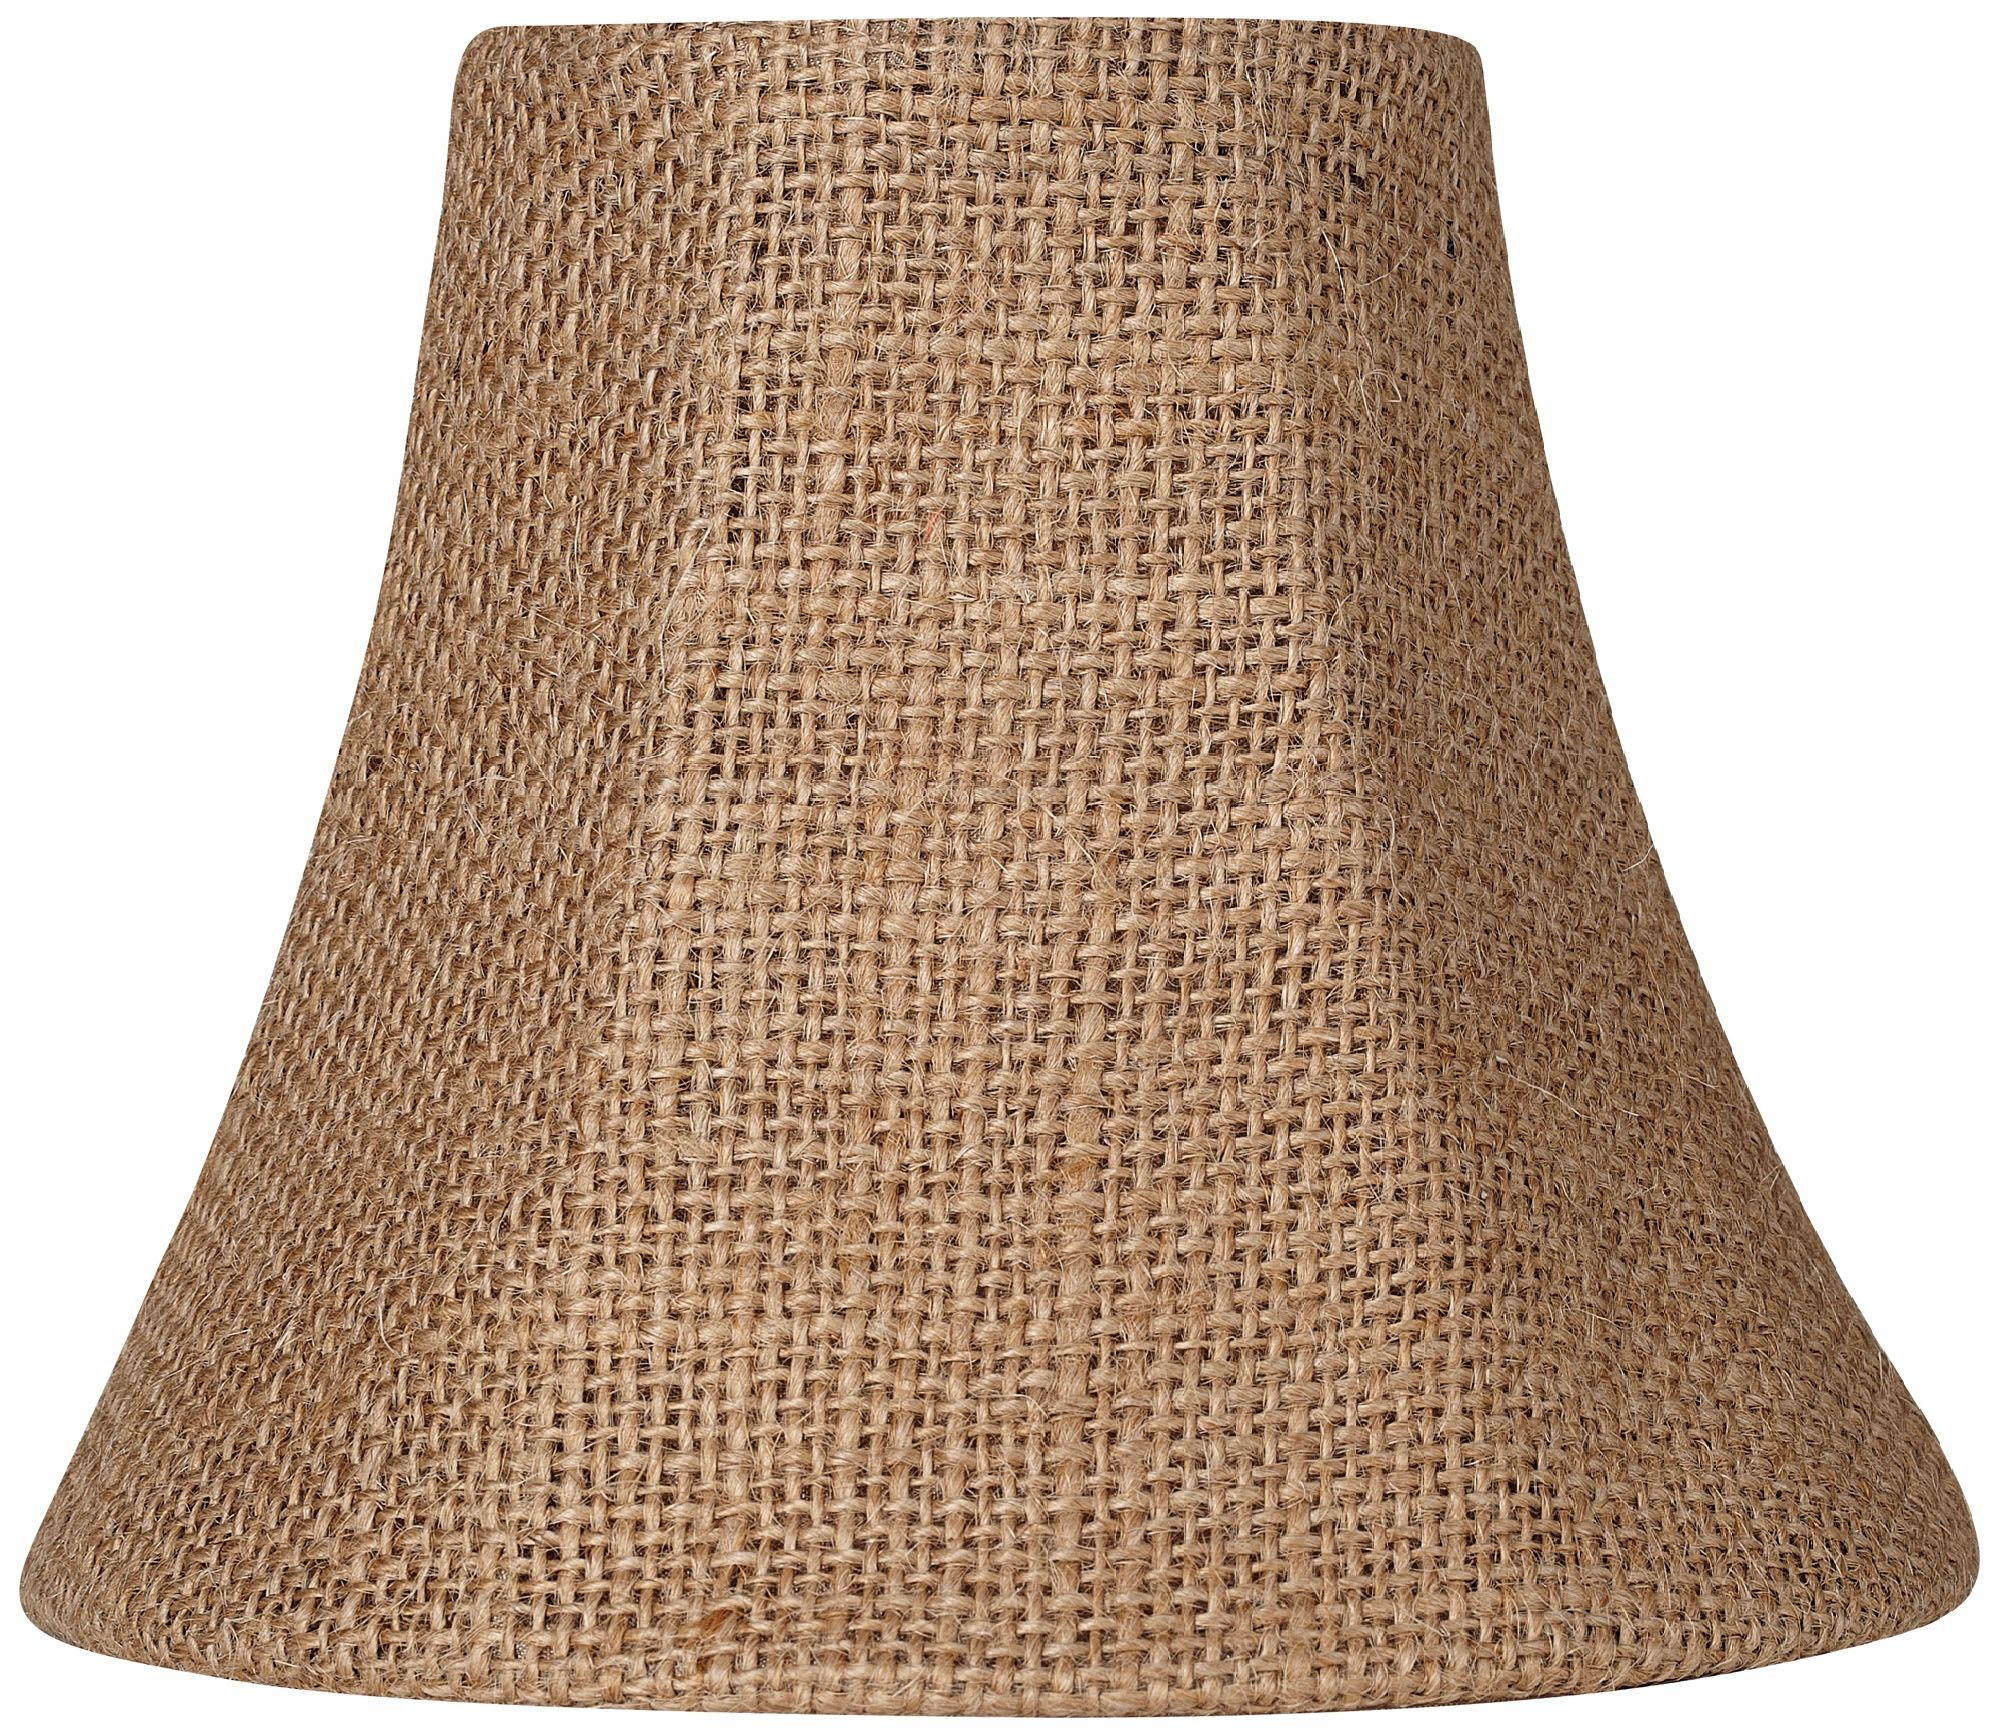 Natural Burlap Bell Lamp Shade 3x6x5 (Clip On)